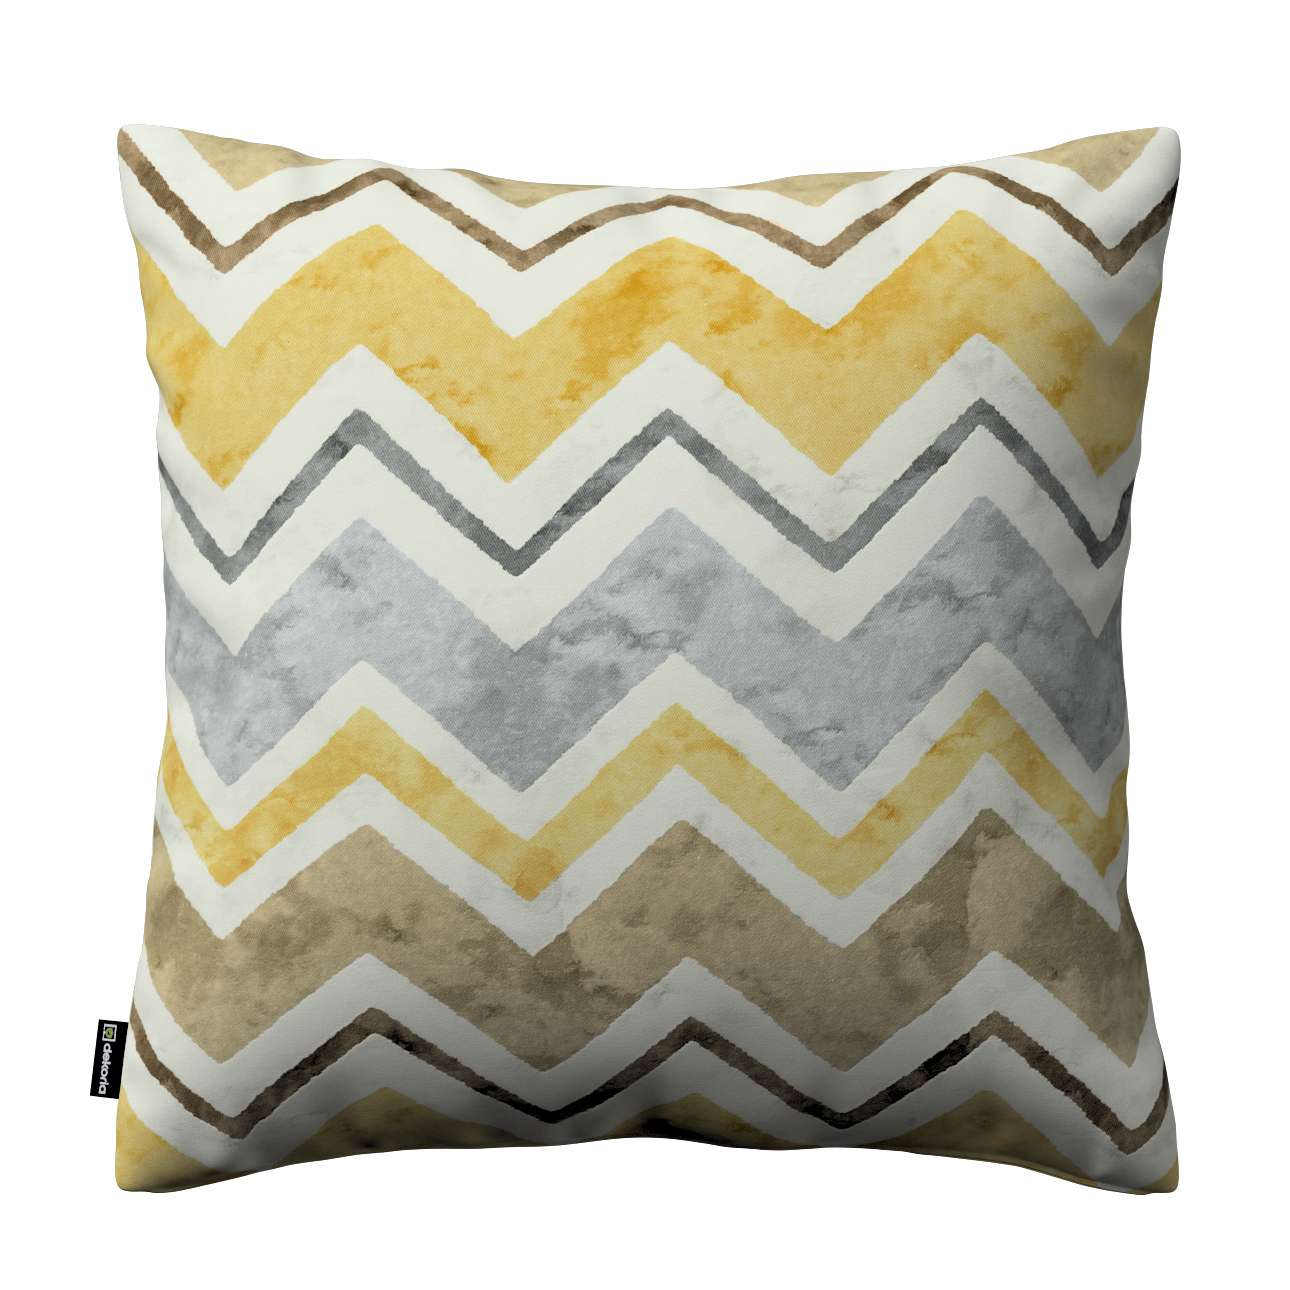 Kinga cushion cover in collection Acapulco, fabric: 141-39